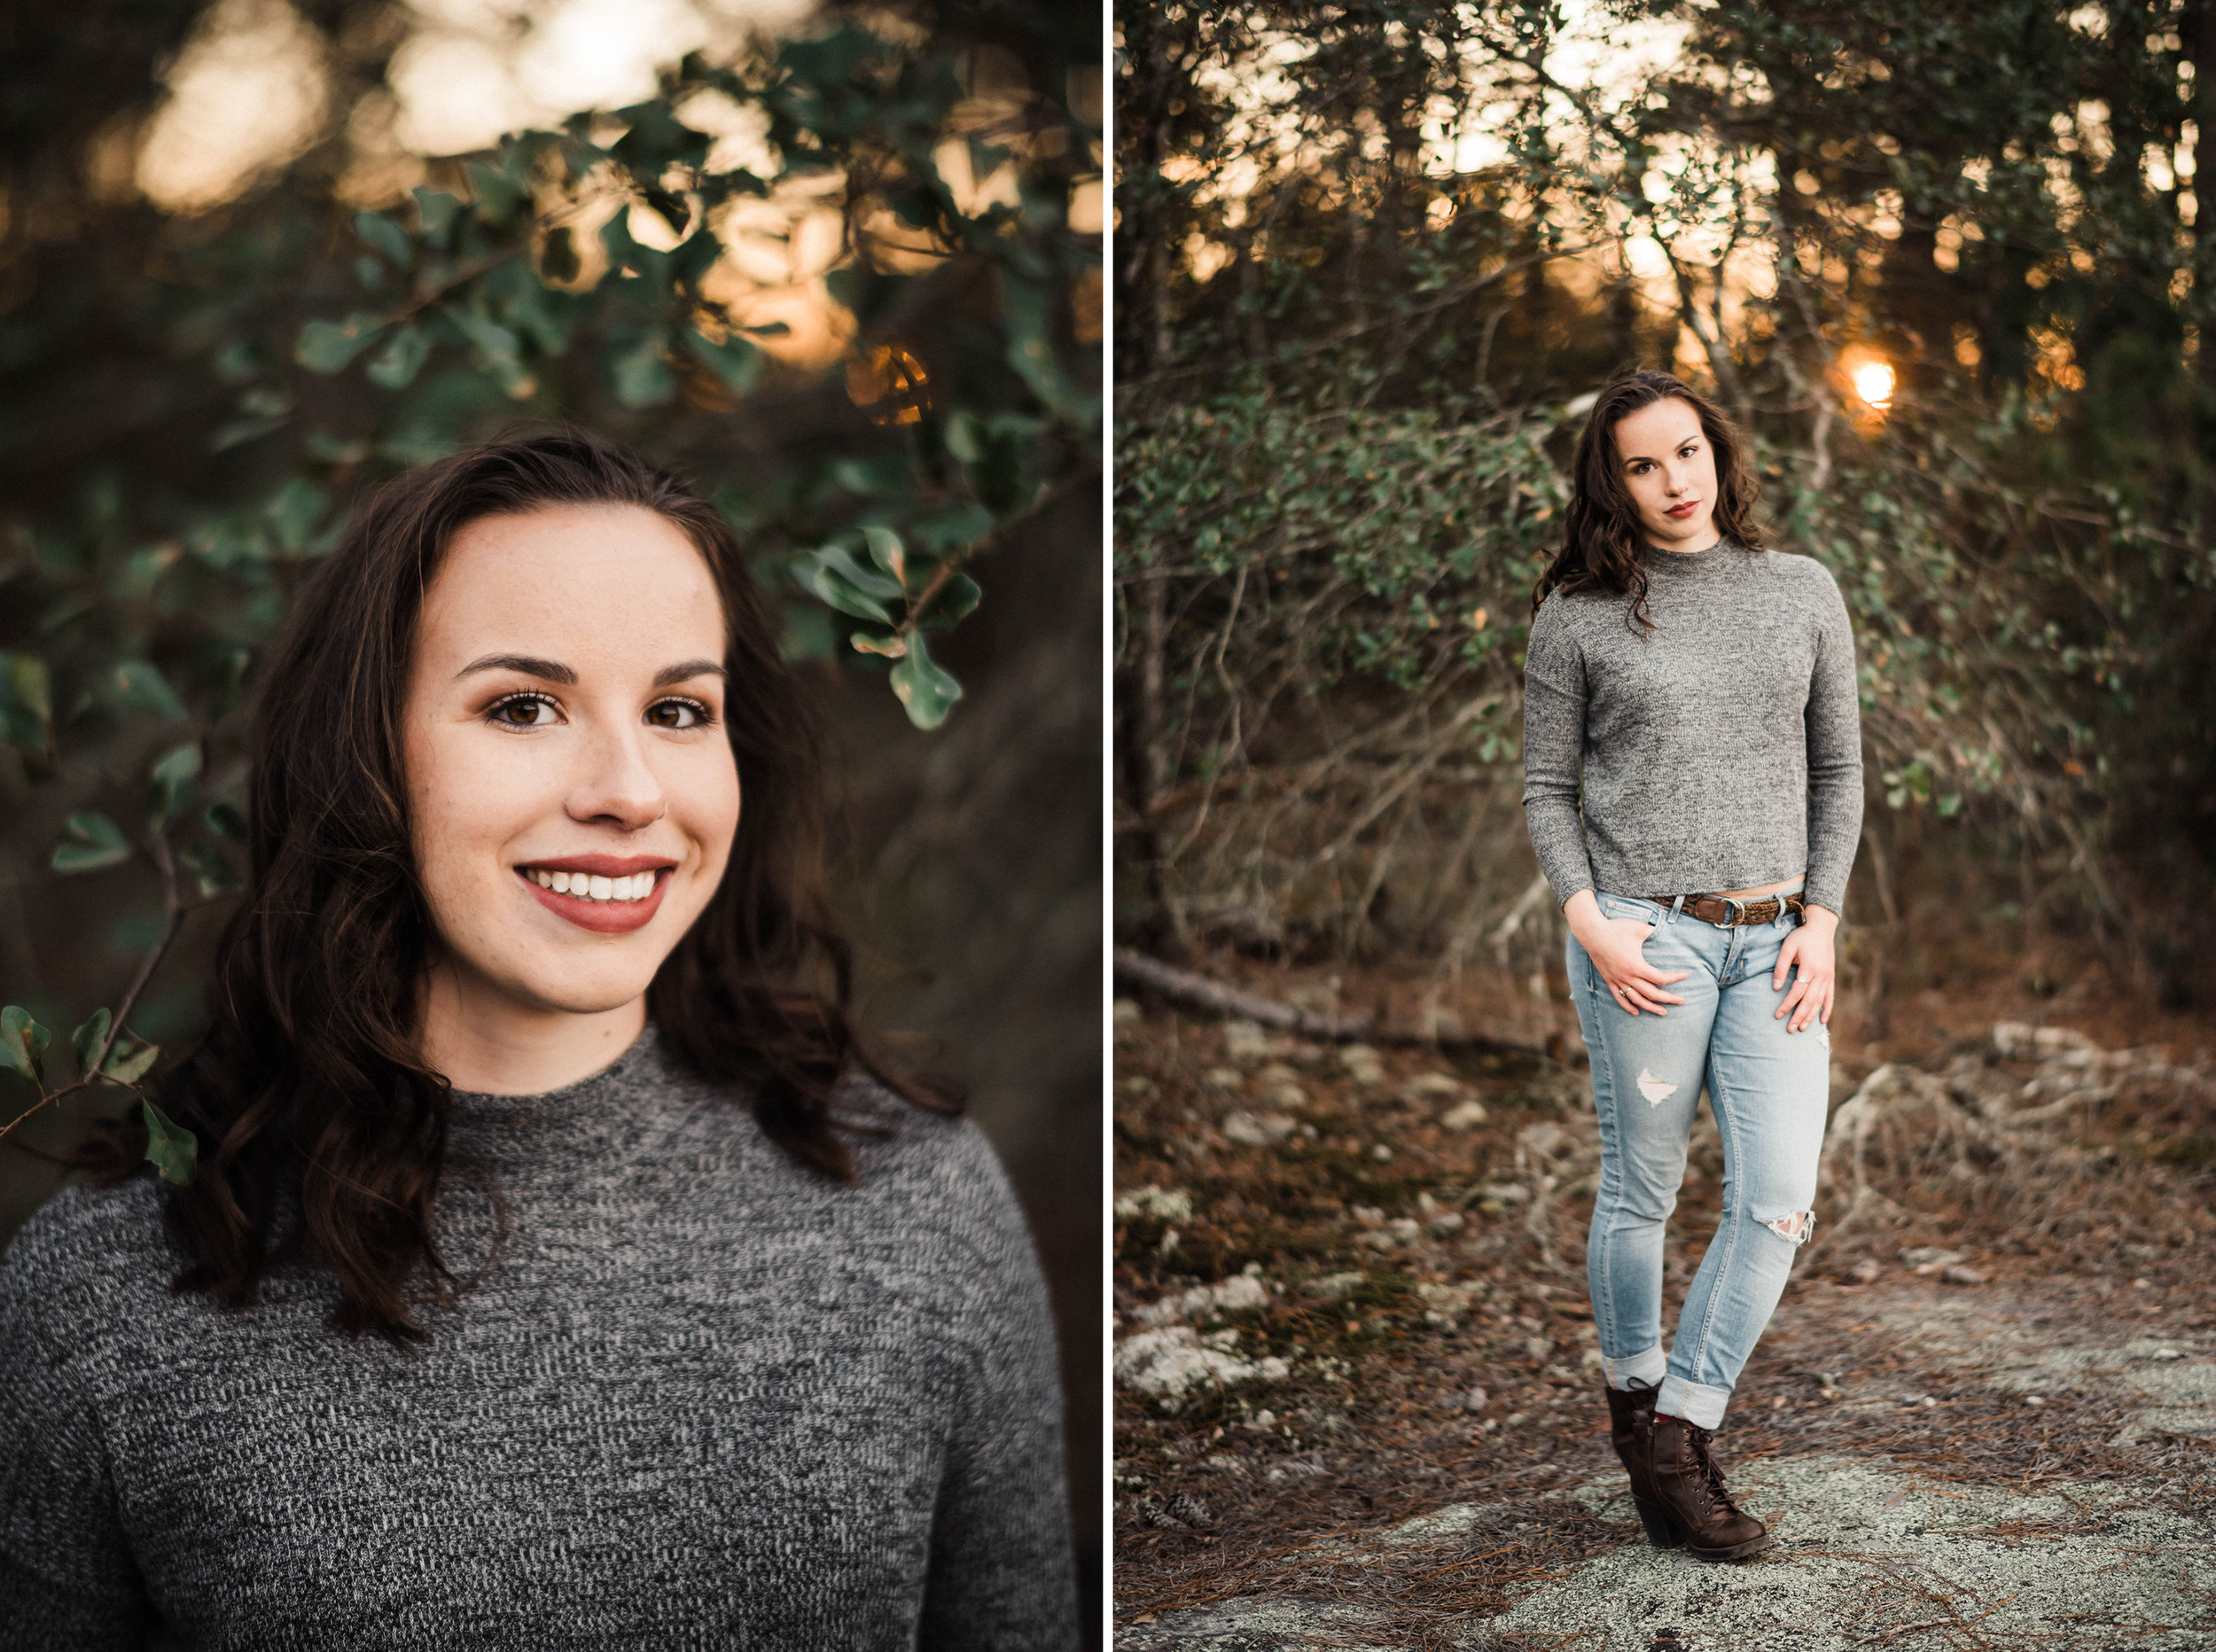 atlanta fun adventure senior portrait photographer 1.jpg